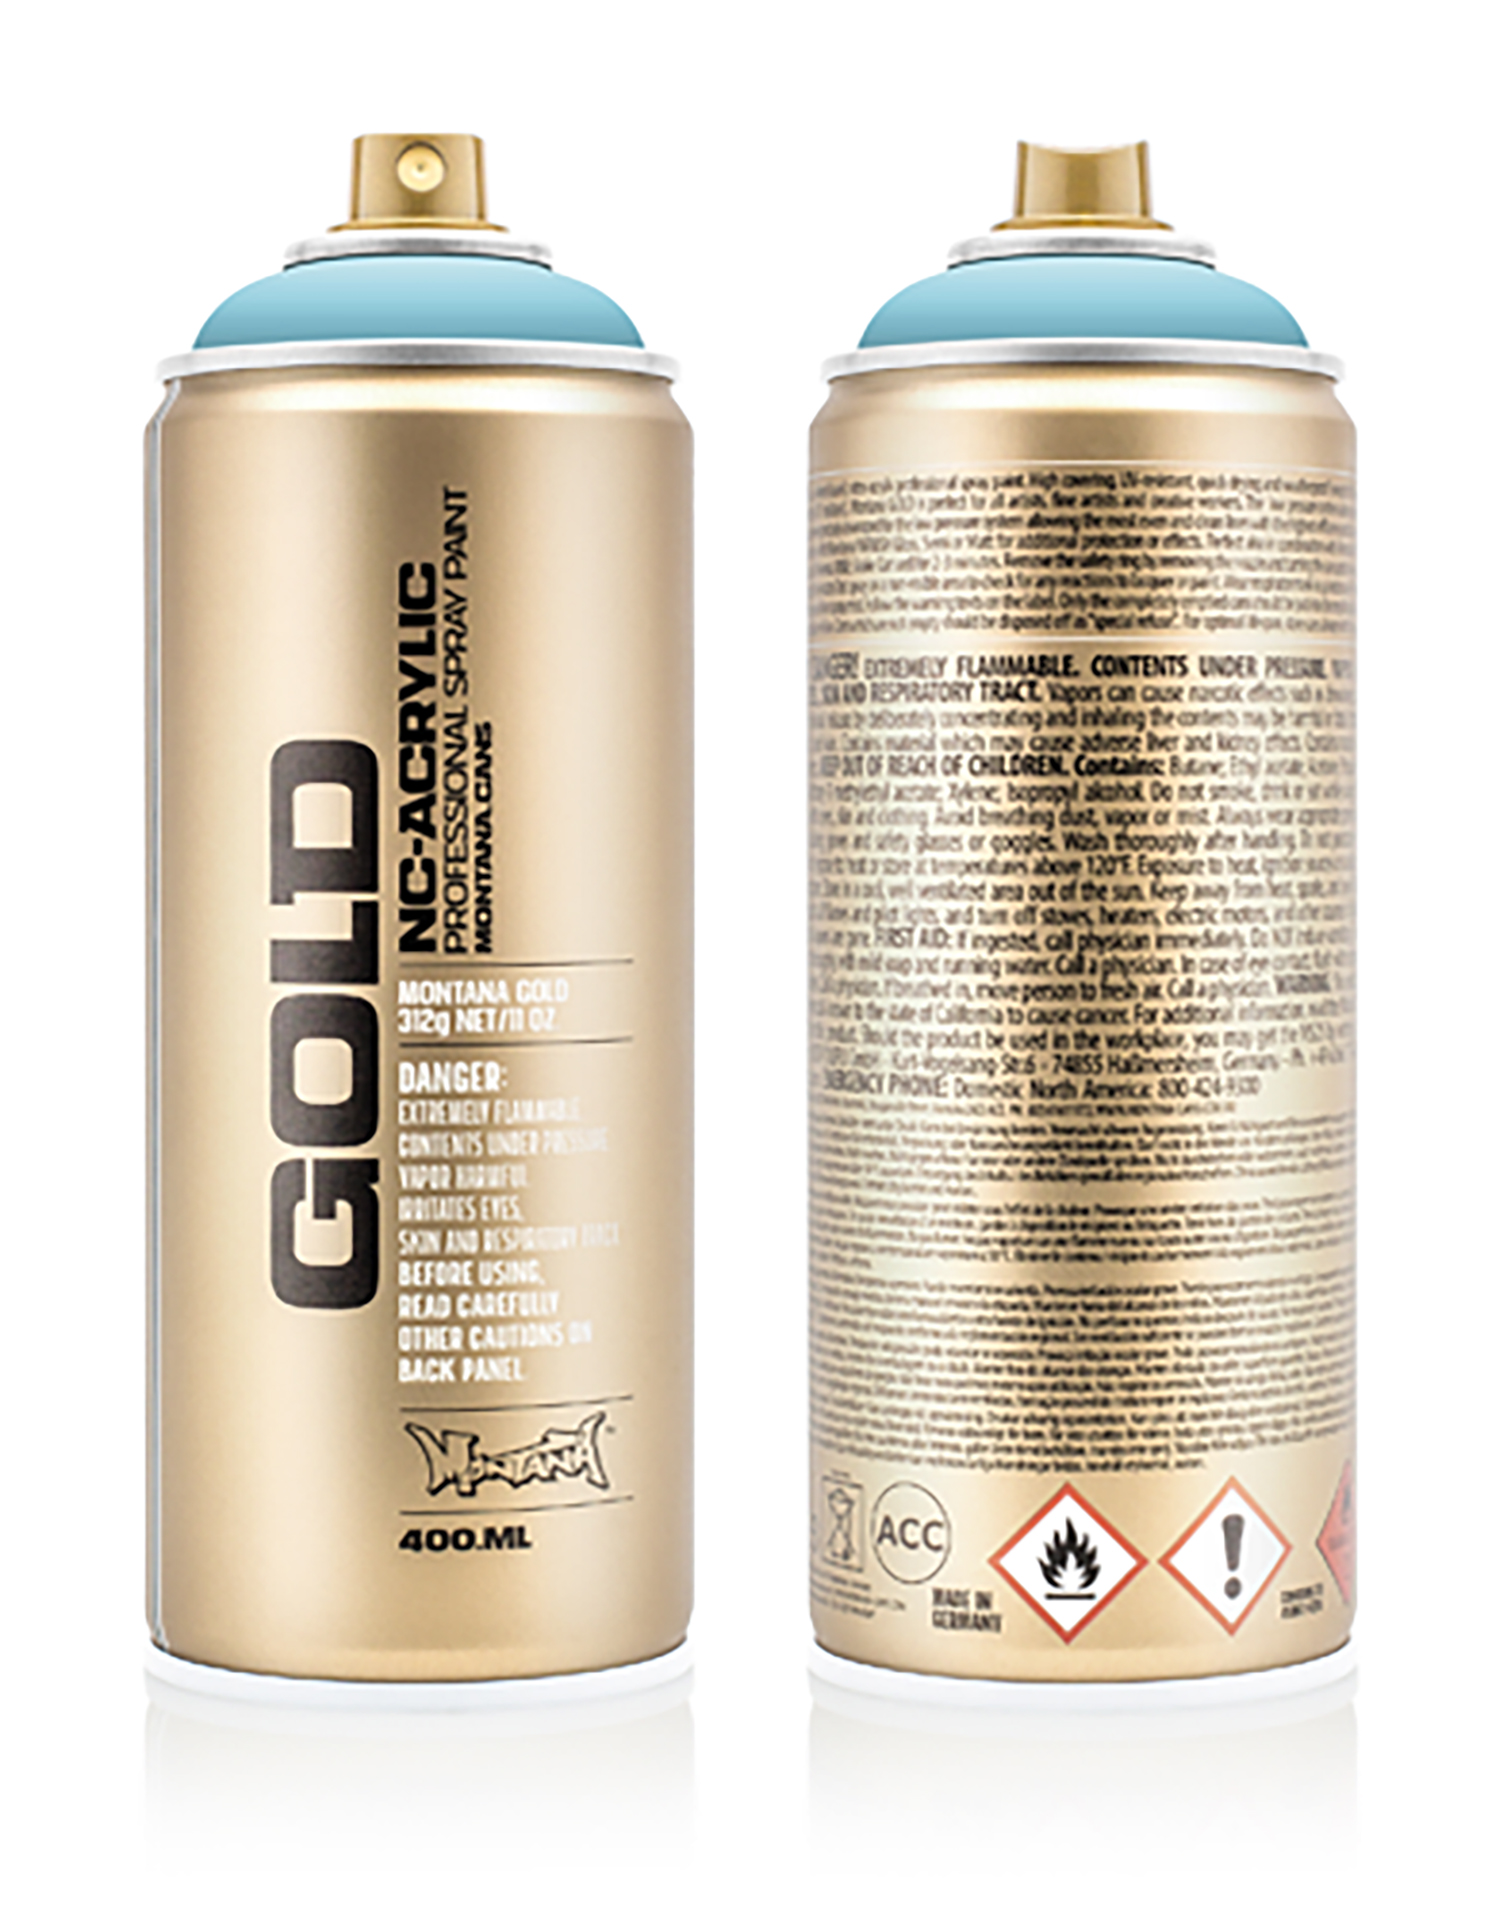 MONTANA-GOLD-SPRAY-400ML-G-5110